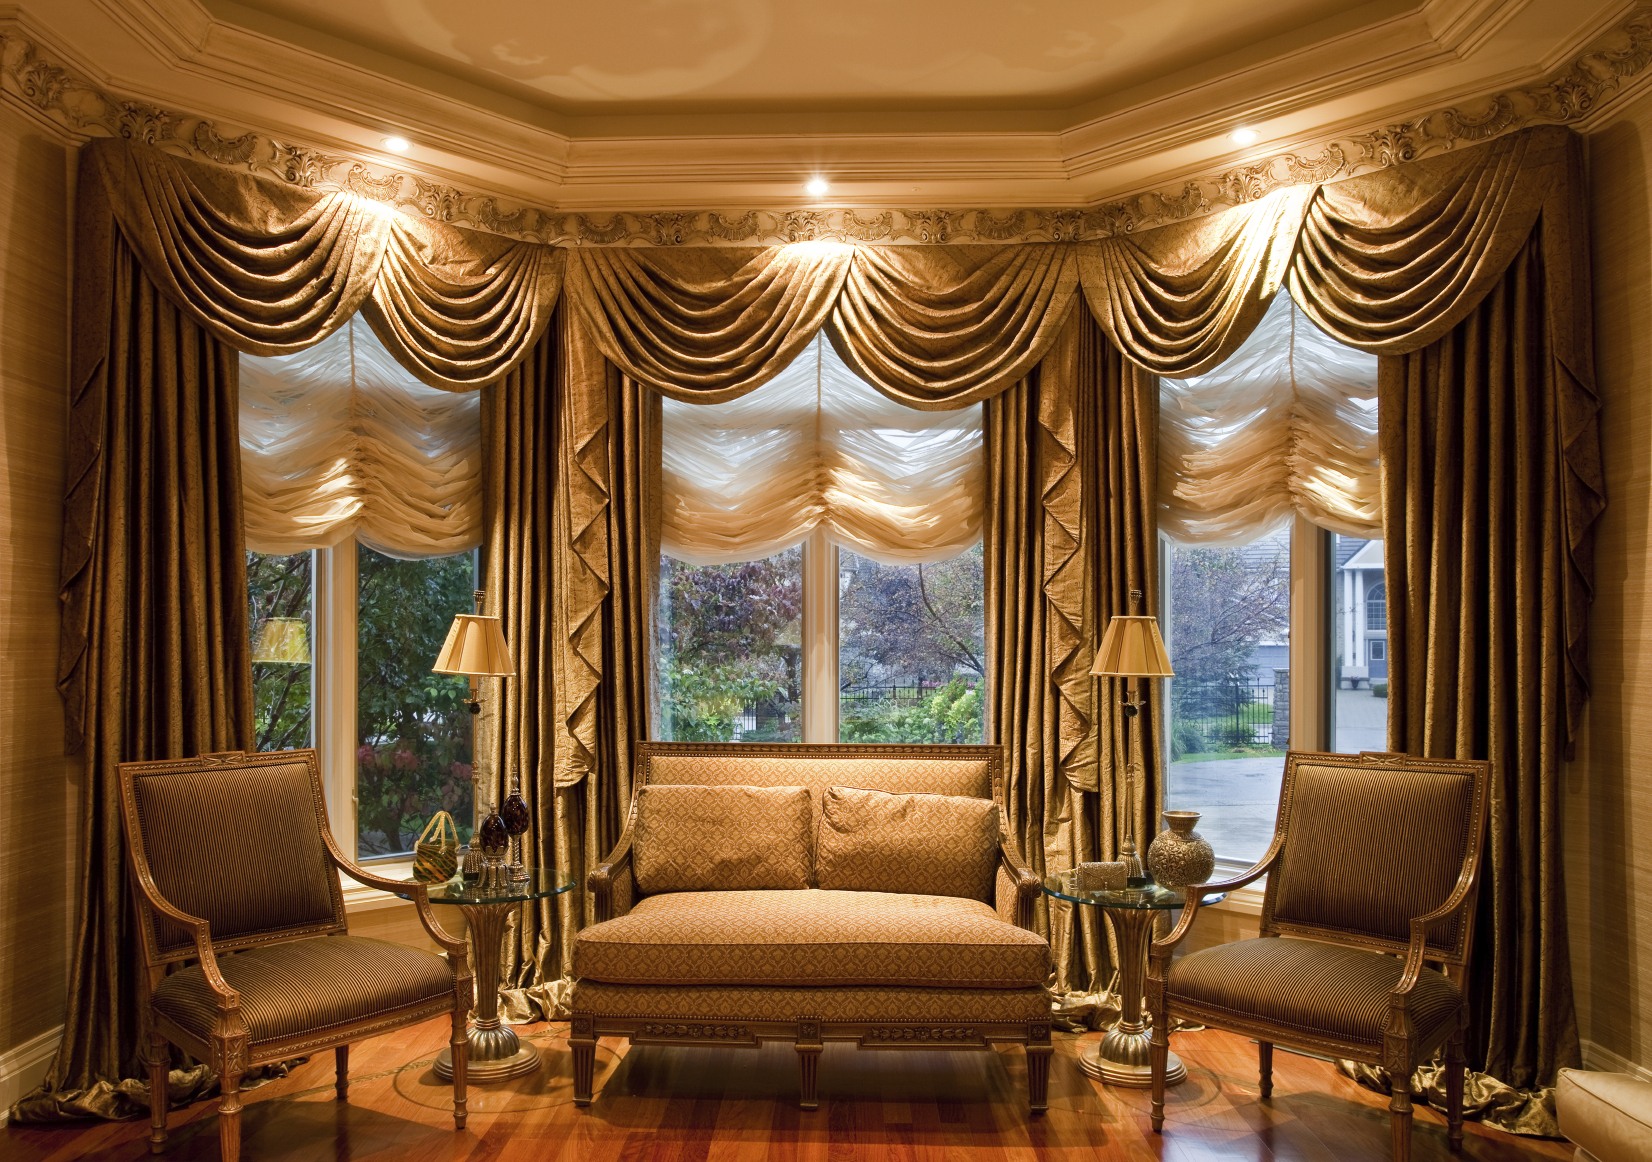 window treatments roman shades shrewsburyfinishing touches. Black Bedroom Furniture Sets. Home Design Ideas